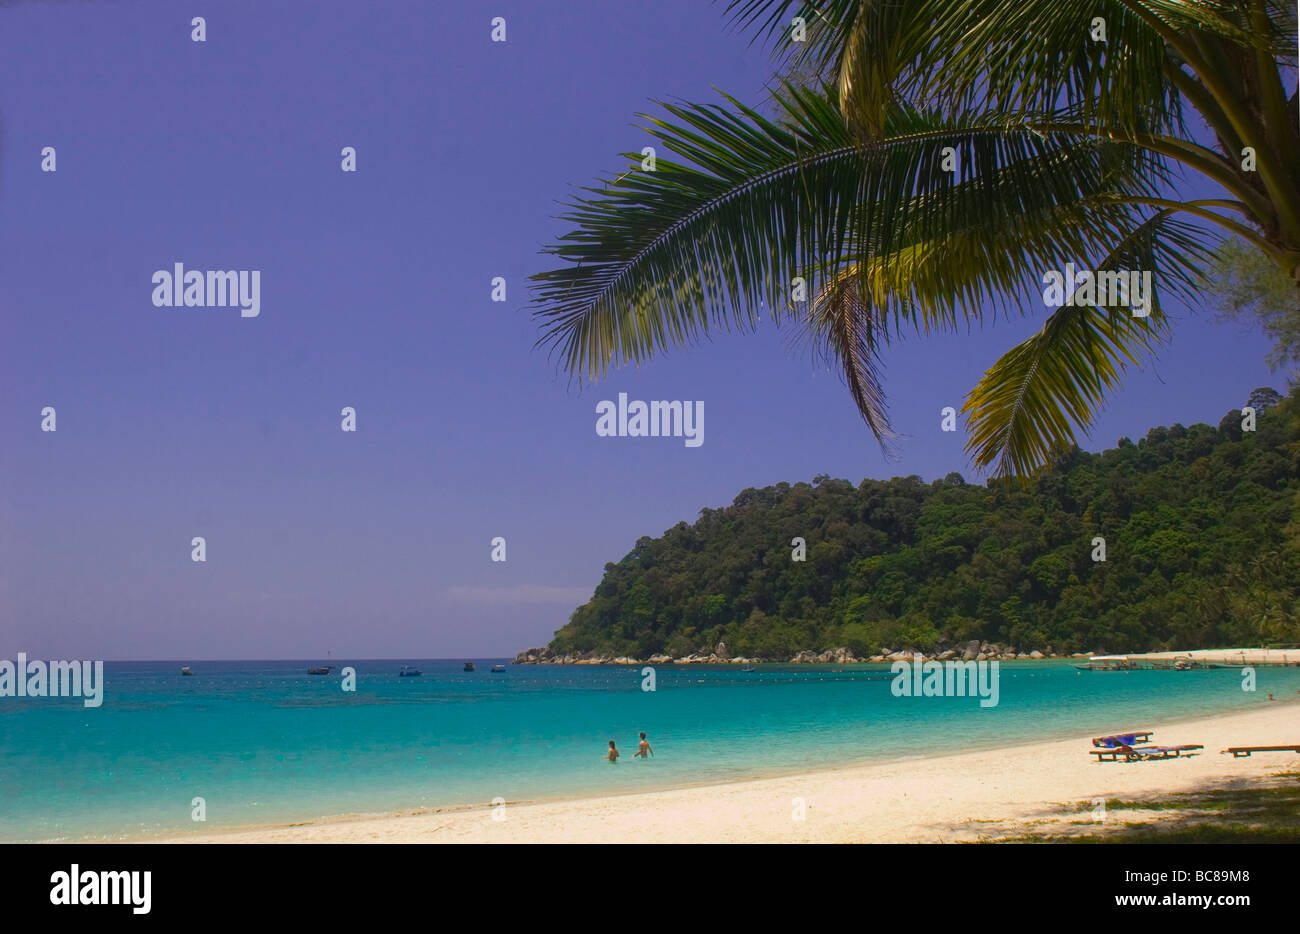 White sandy beach lined with palmtrees on Perhentian Islands - Stock Image